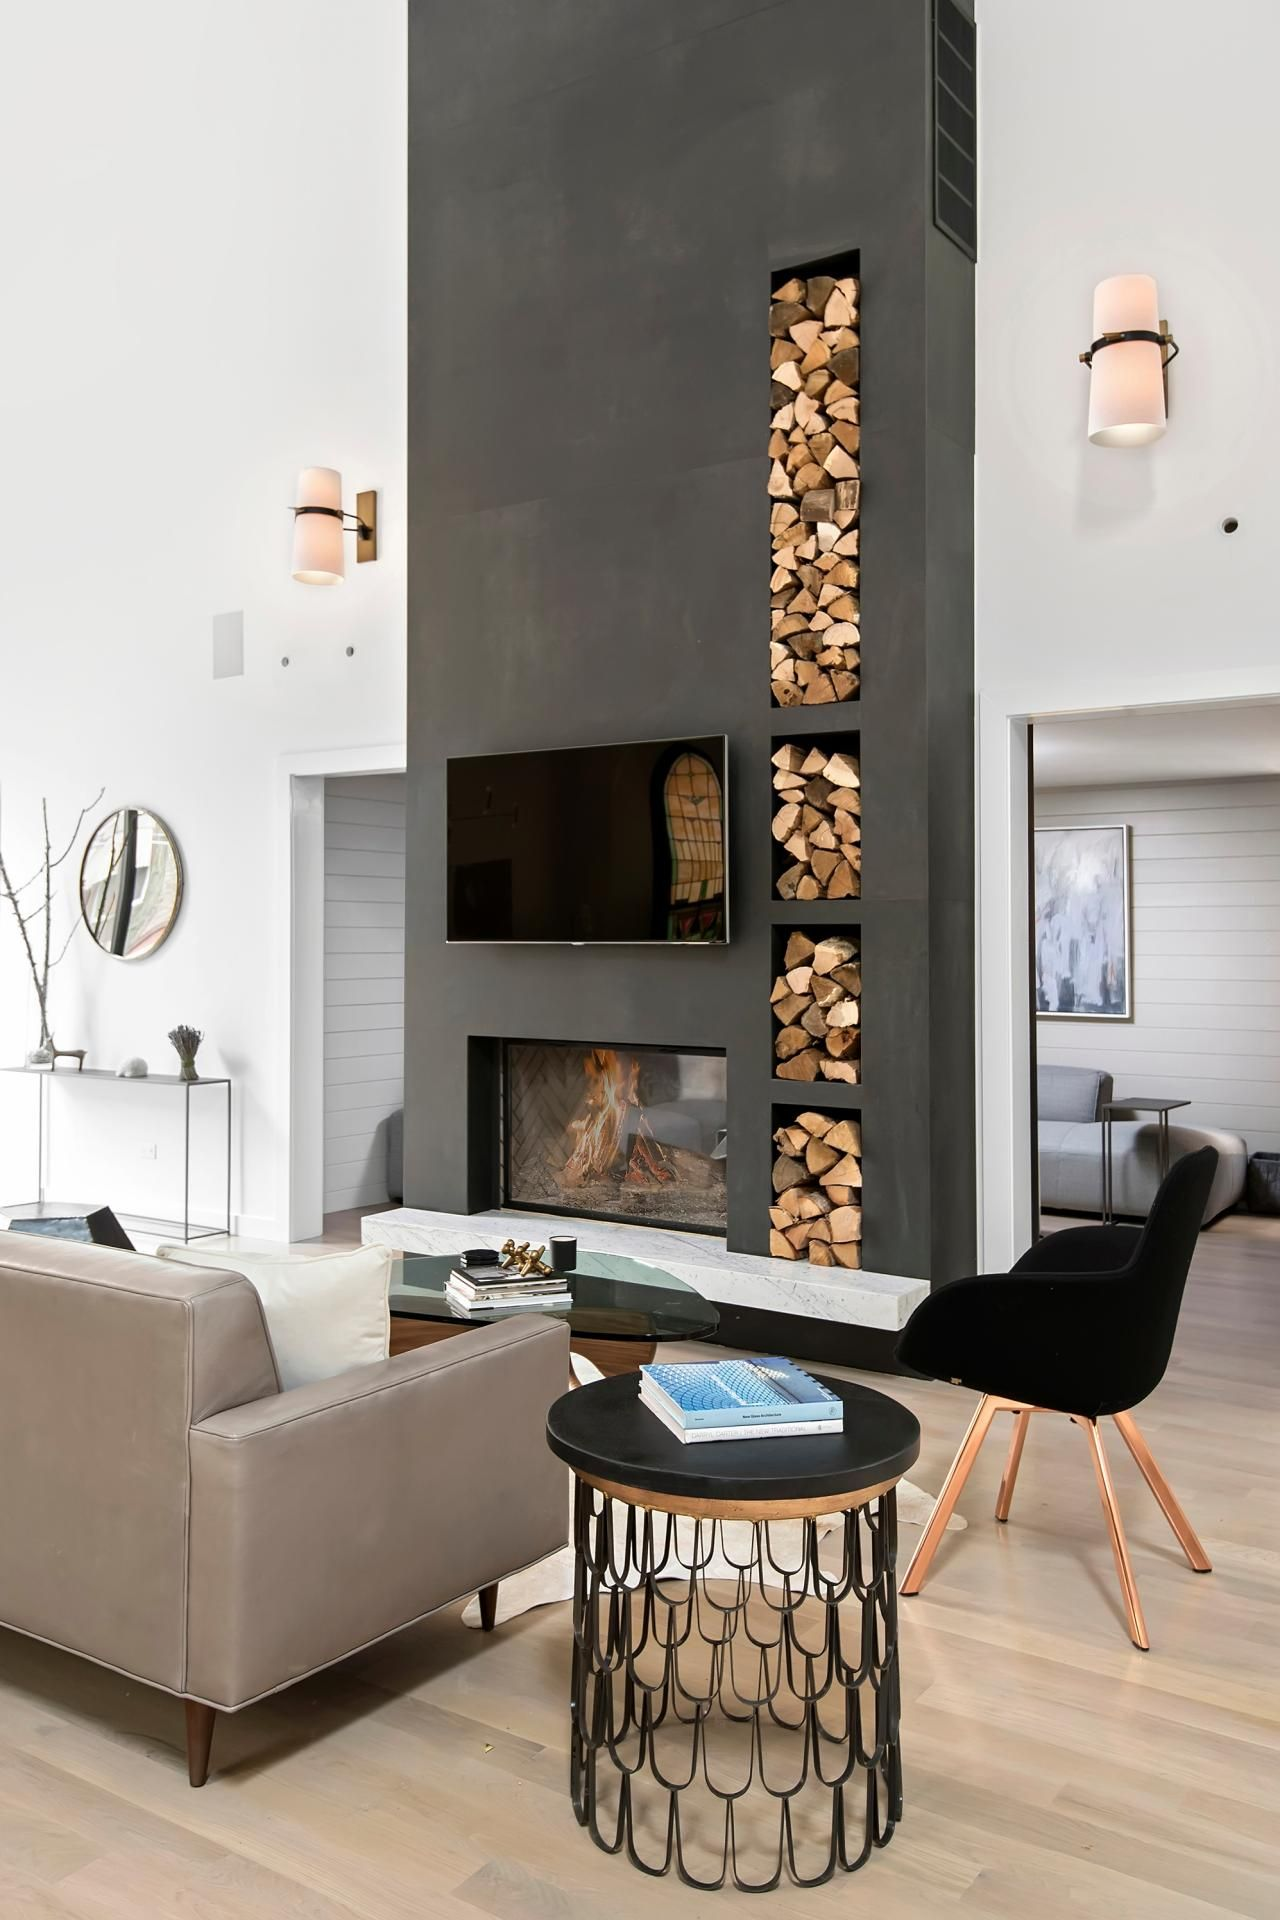 Modern Living Room With Fireplace And Tv this modern living room turns its firewood storage into an eye